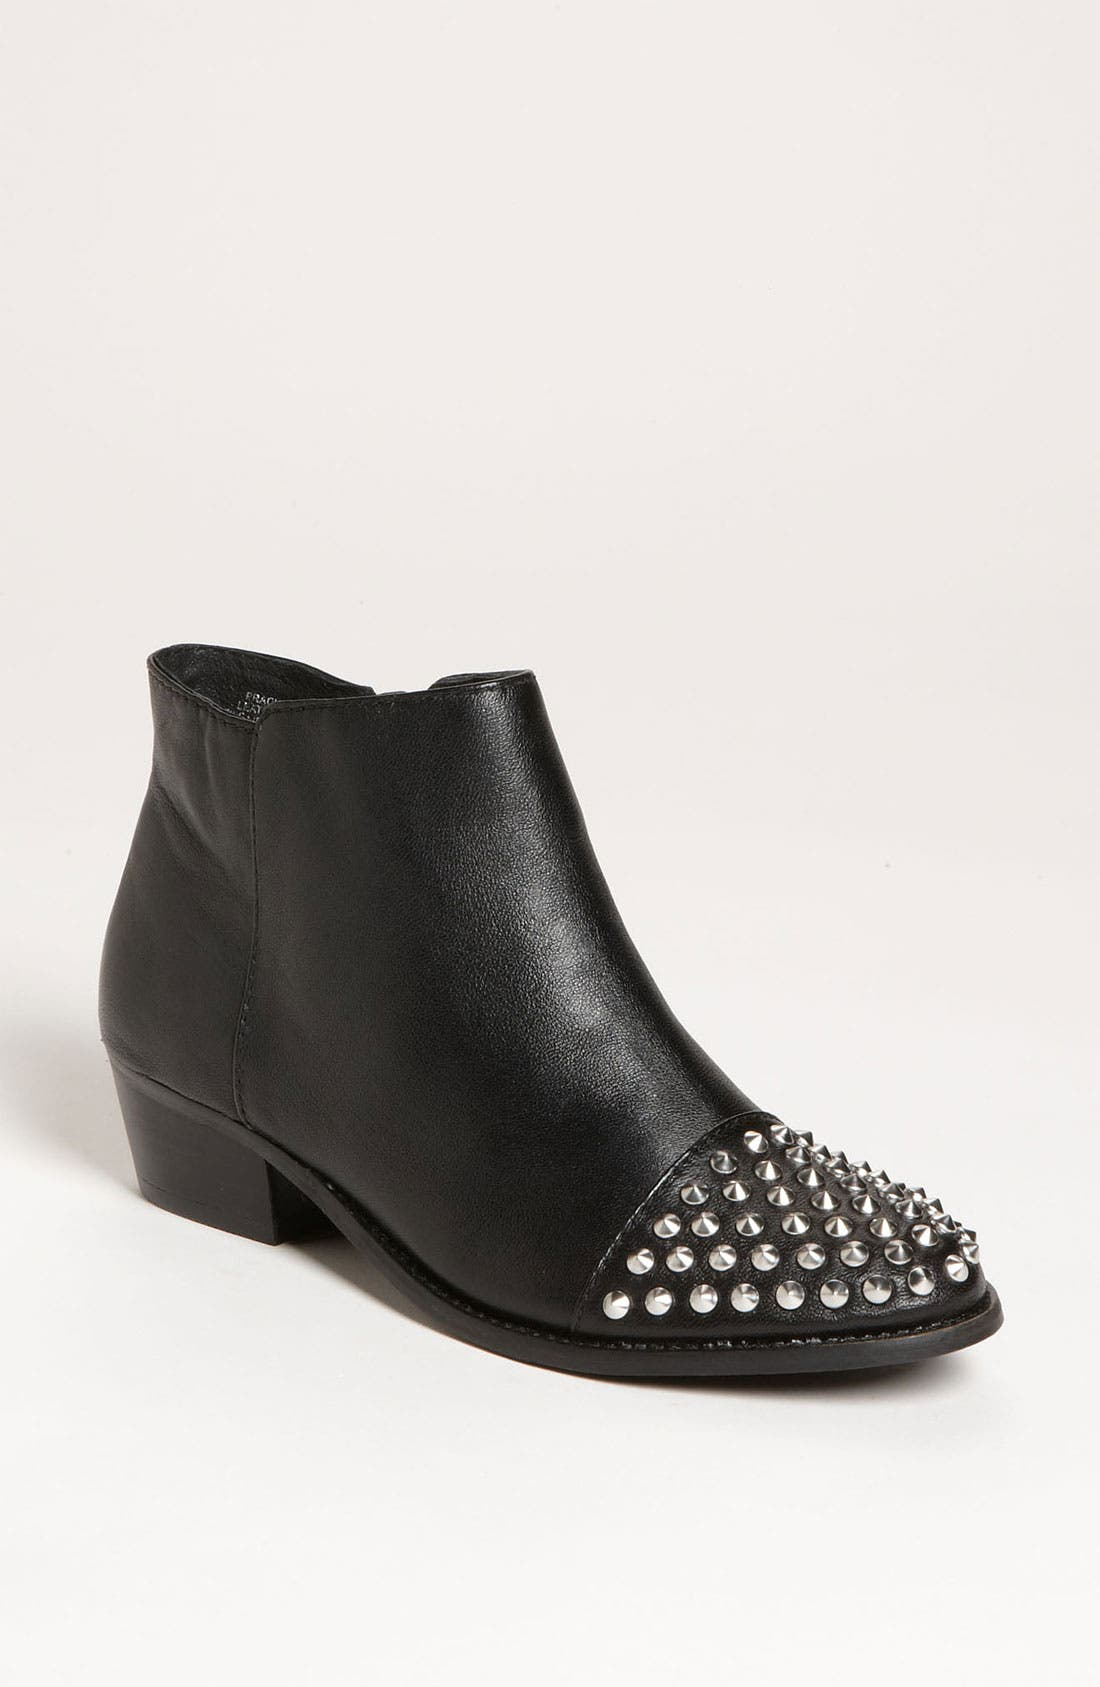 Alternate Image 1 Selected - Steve Madden 'Praque' Bootie